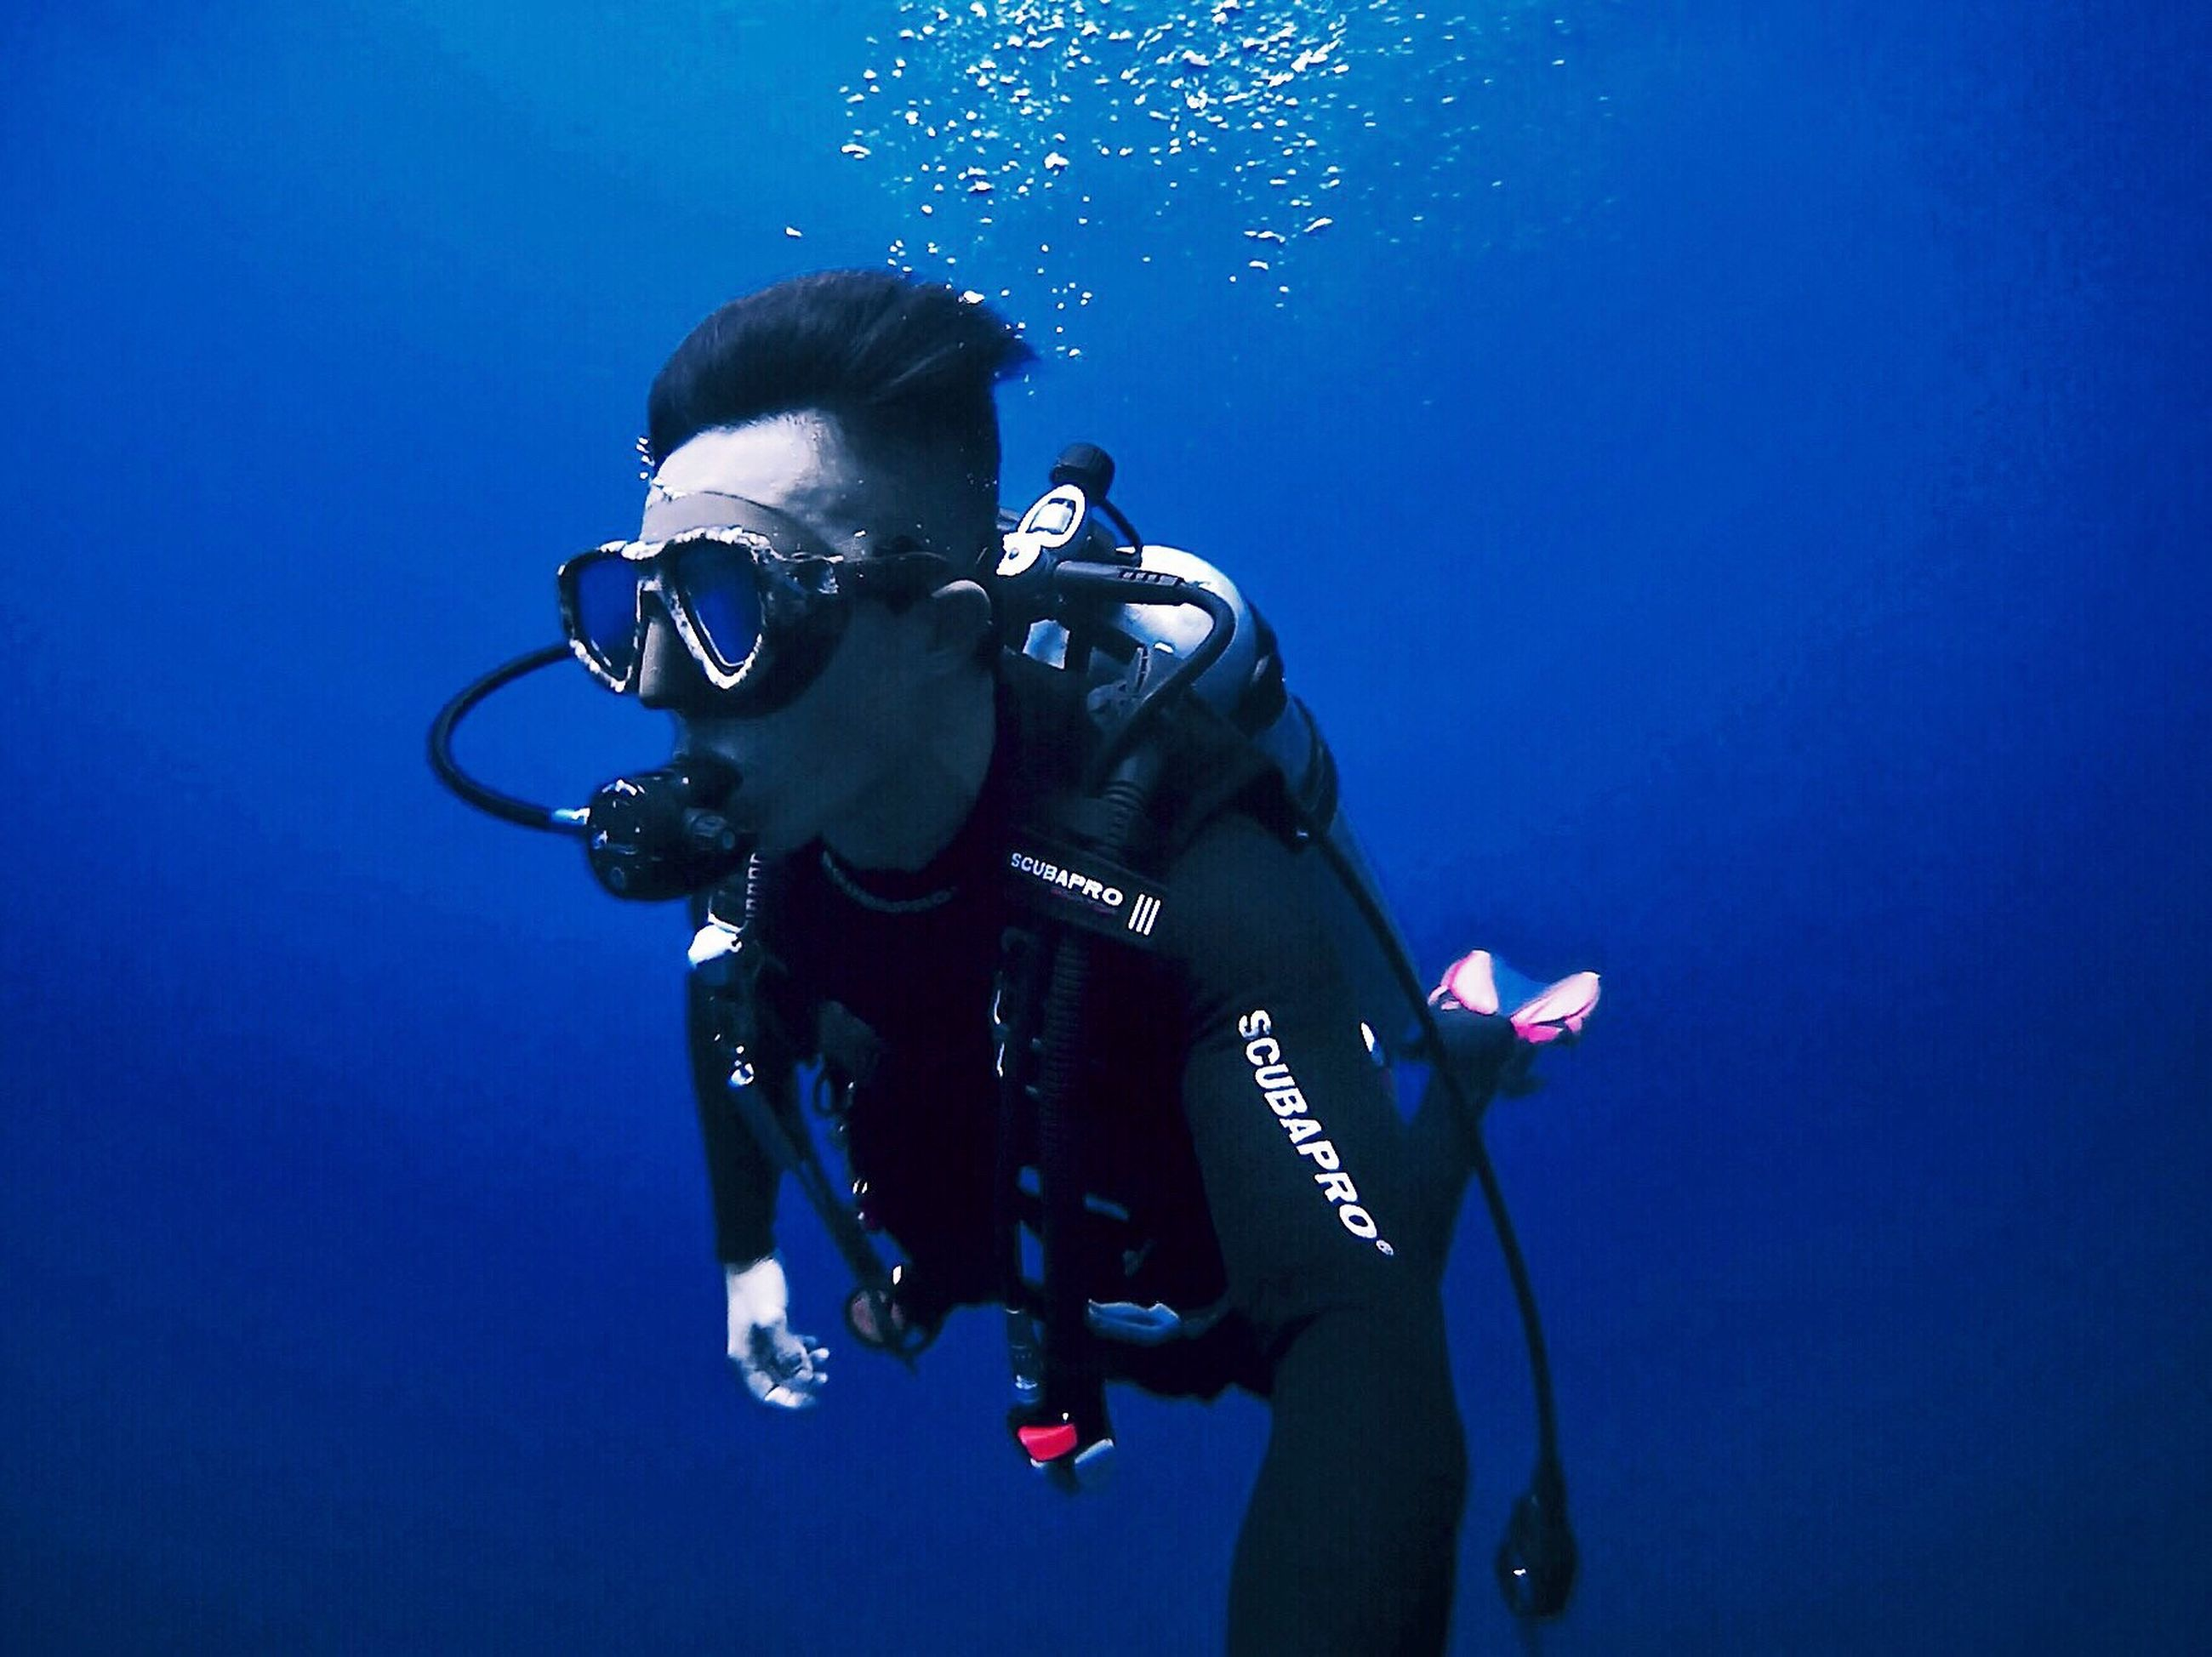 blue, only men, scuba diving, underwater, skill, people, men, real people, adults only, adult, young adult, monopod, undersea, outdoors, day